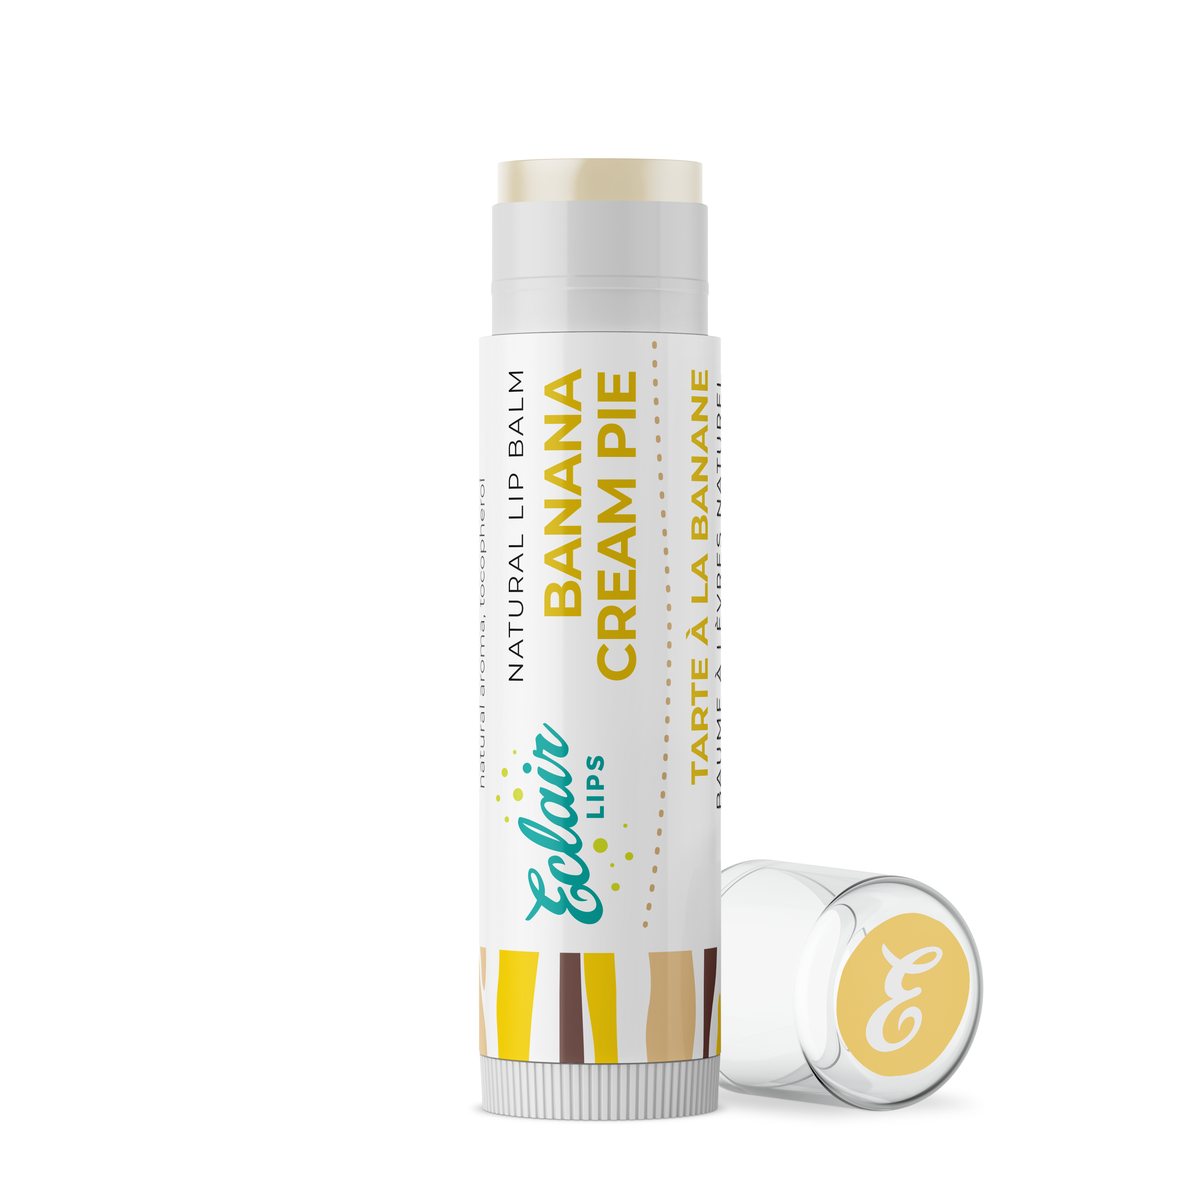 Eclair Lips - Natural Lip Balm - Banana Cream Pie